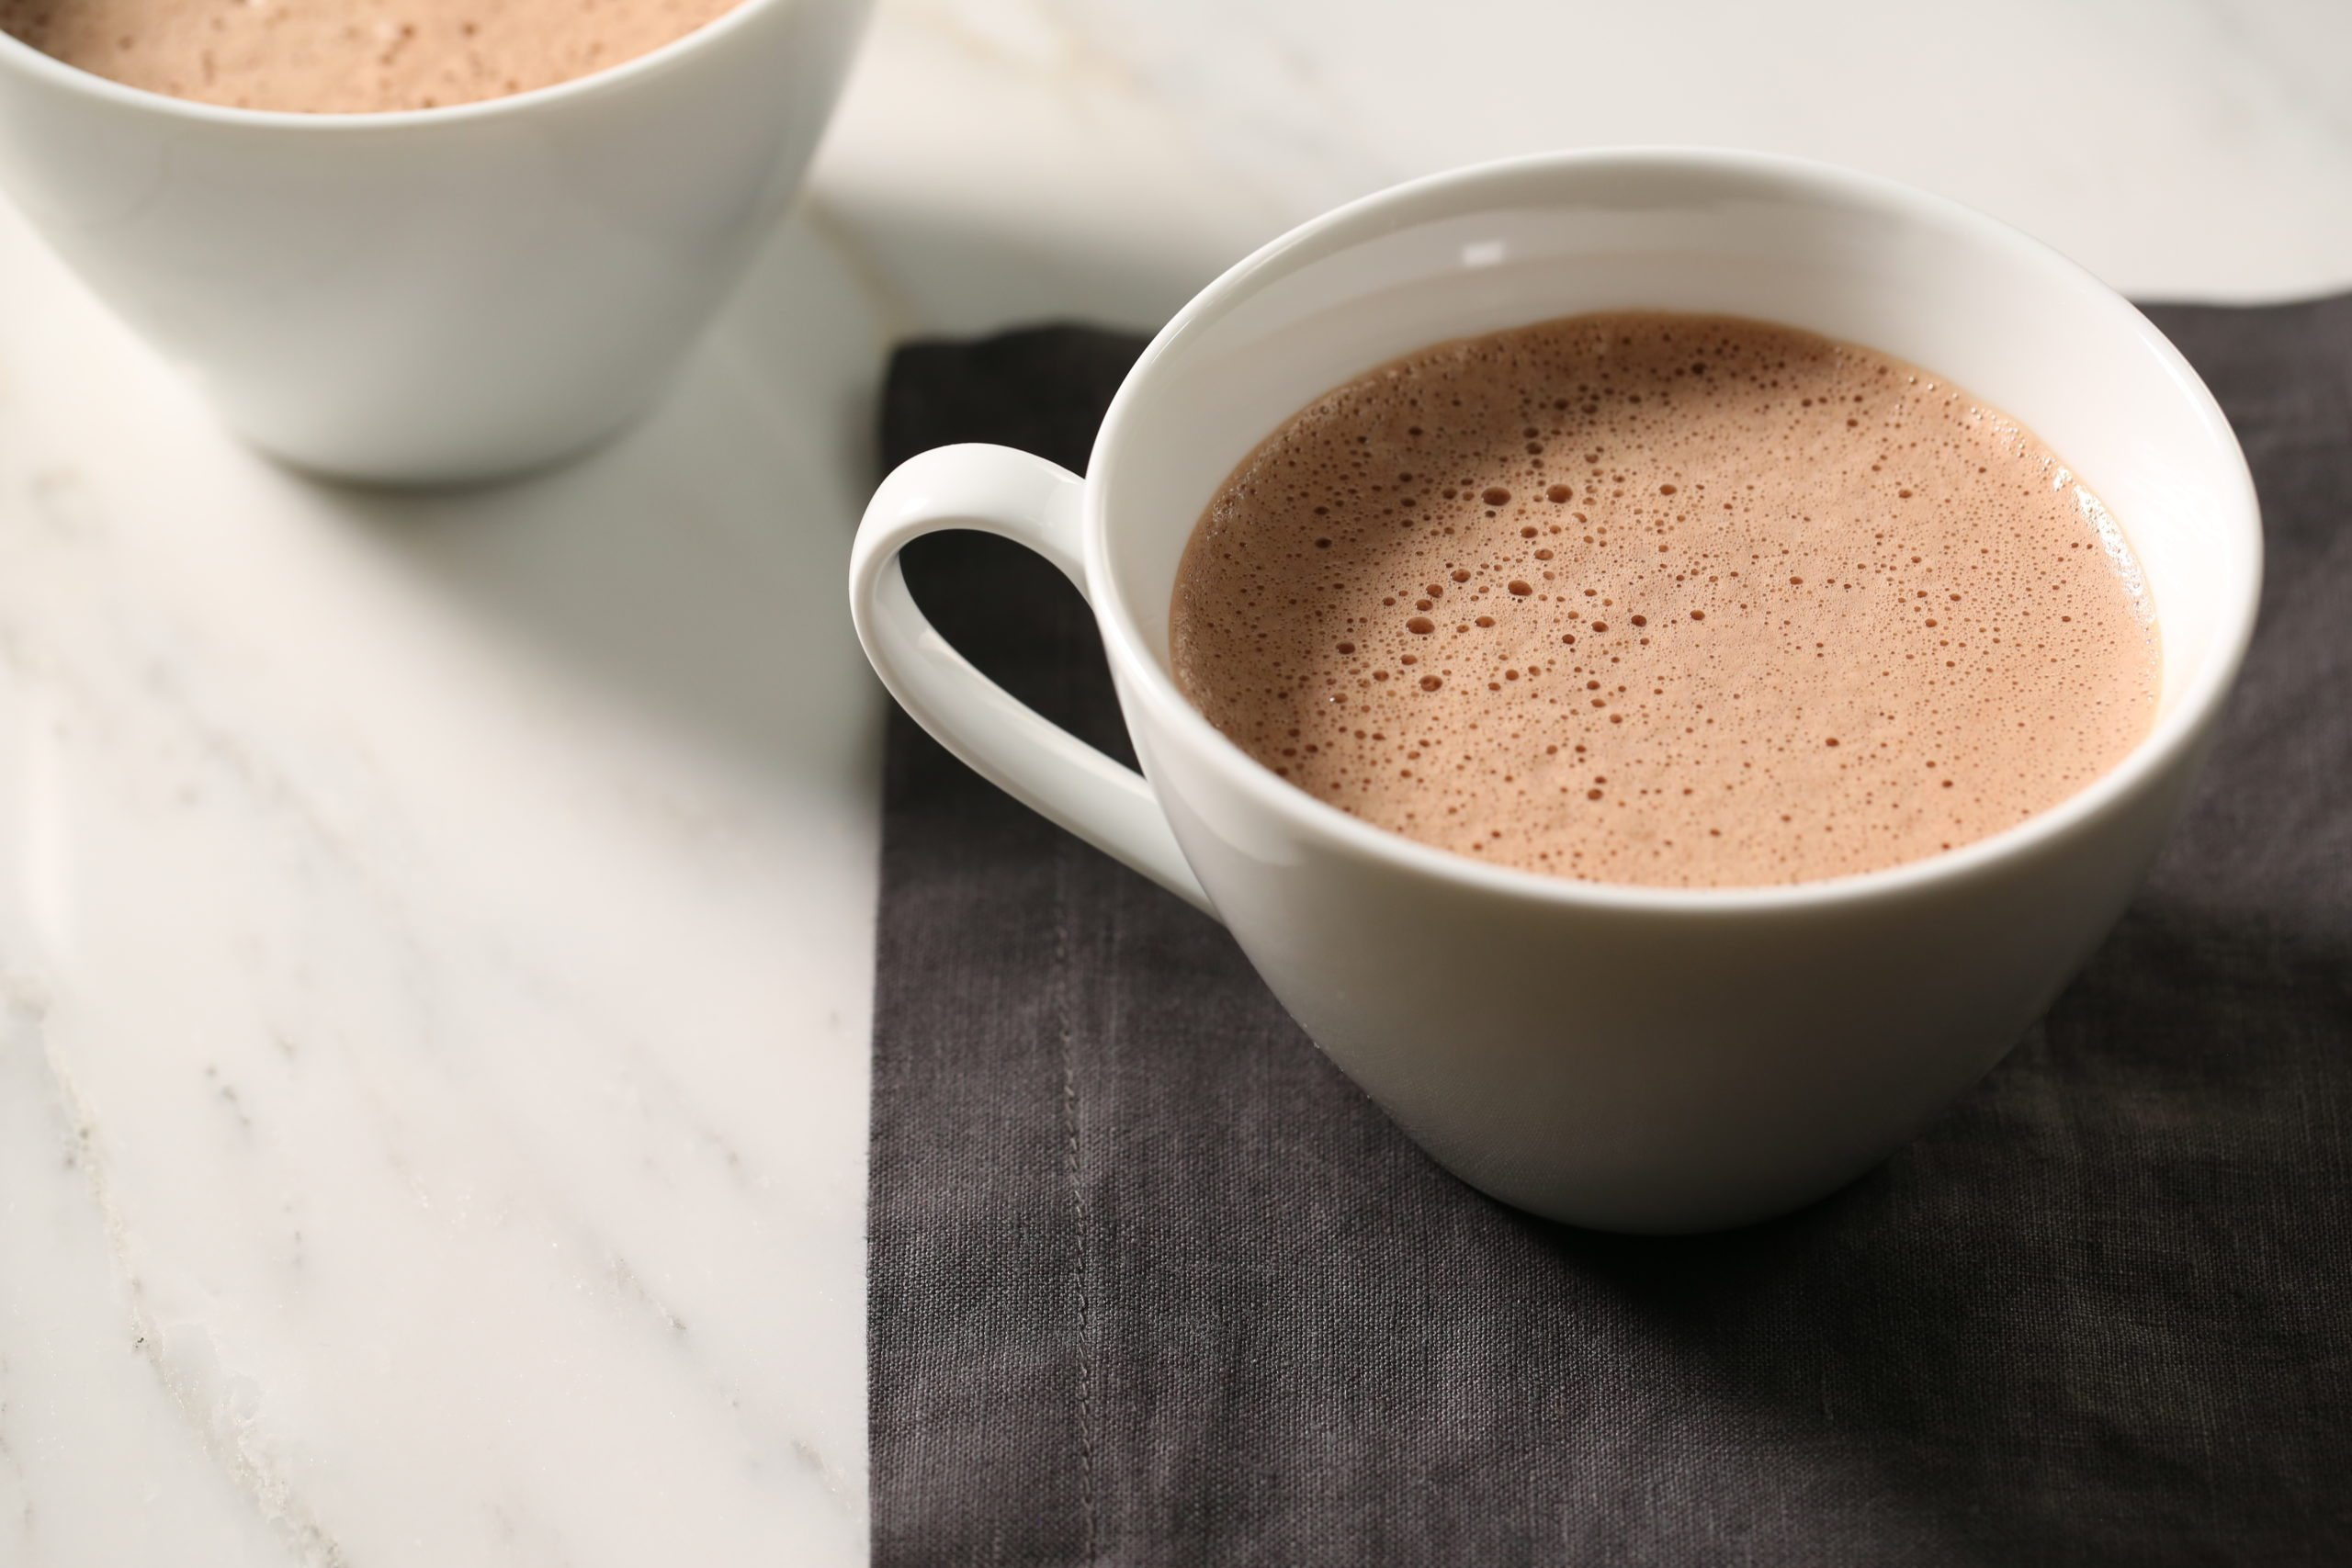 Hot cocoa in a white mug sitting on a black napkin.